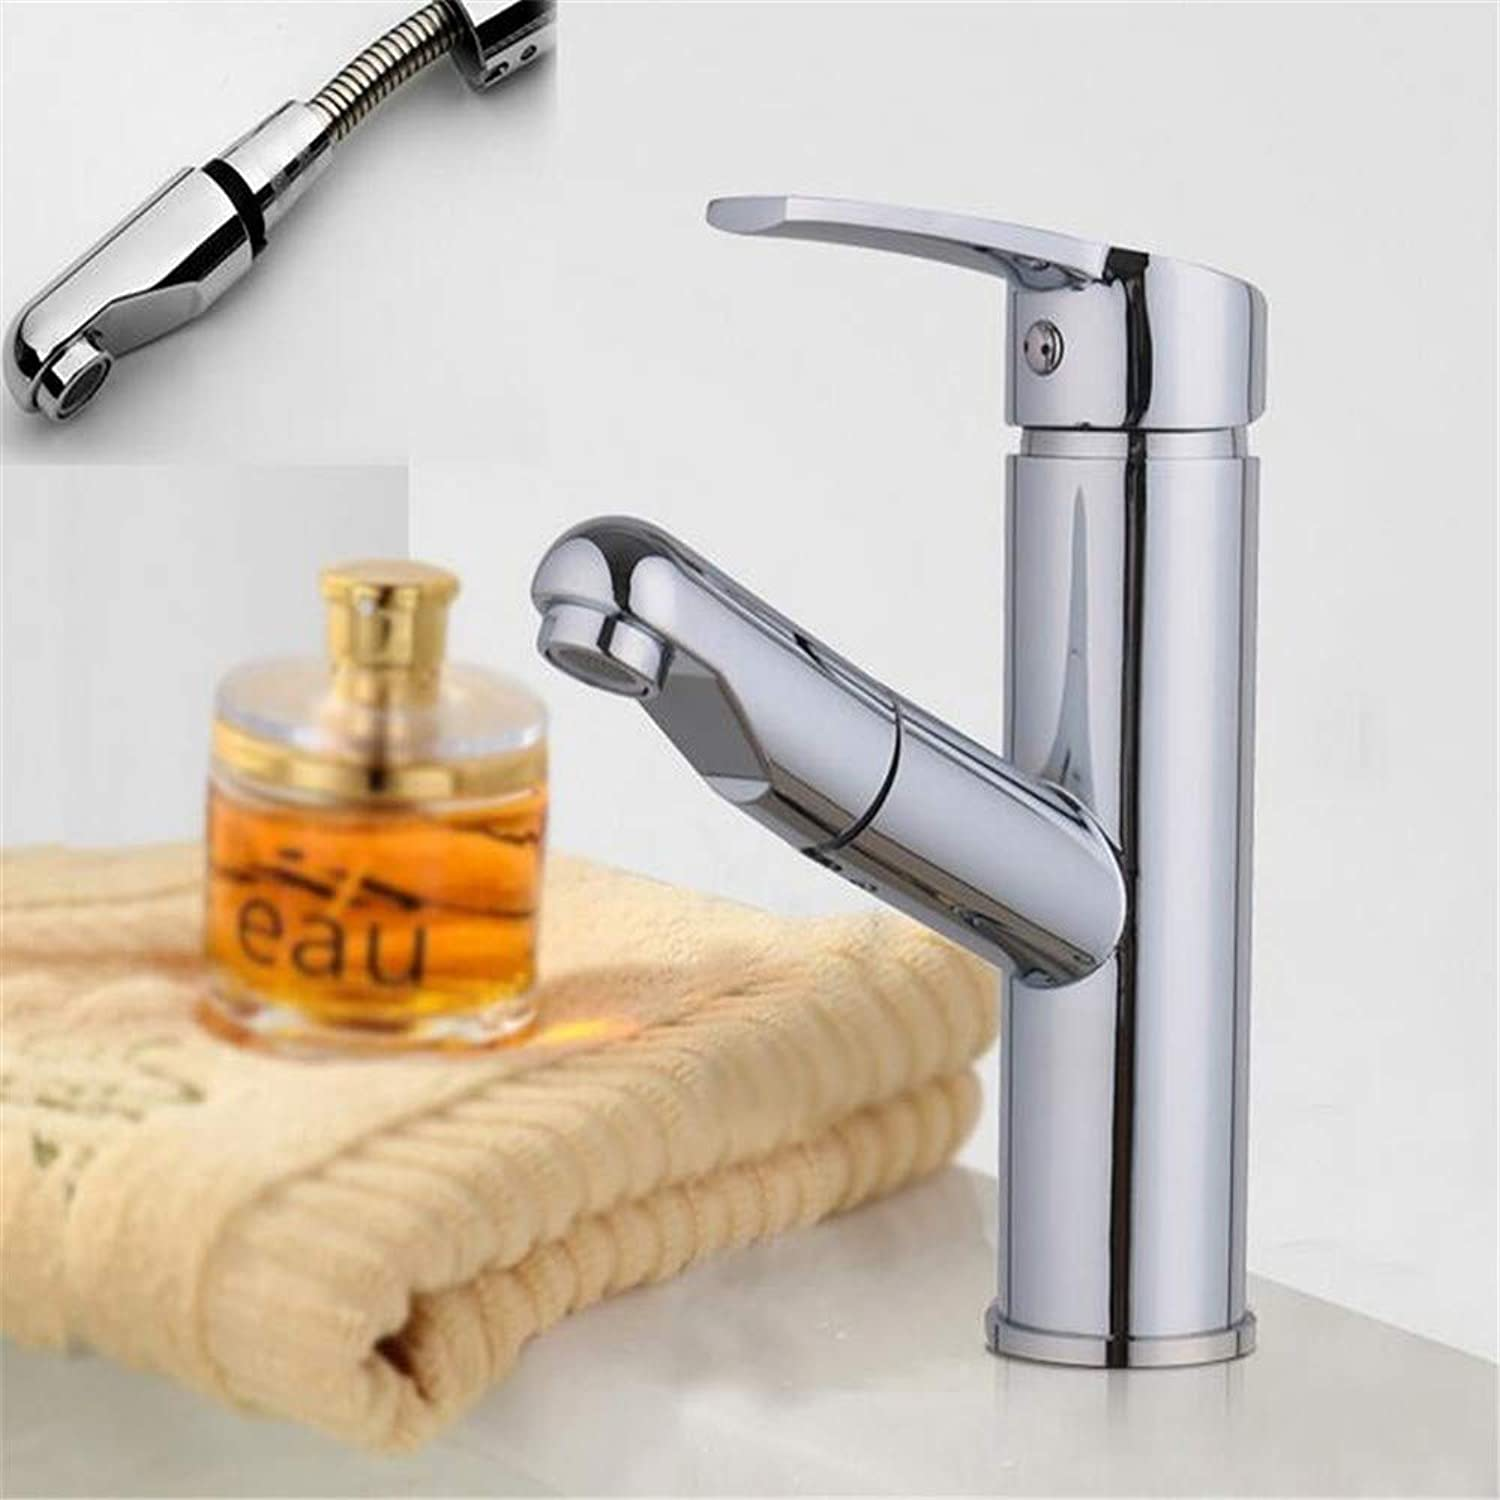 Bathroombasin Mixer Tap Copper Hot and Cold Washbasin Faucet Bathroom Counter Basin Pull Faucet Wash Shampoo Artifact